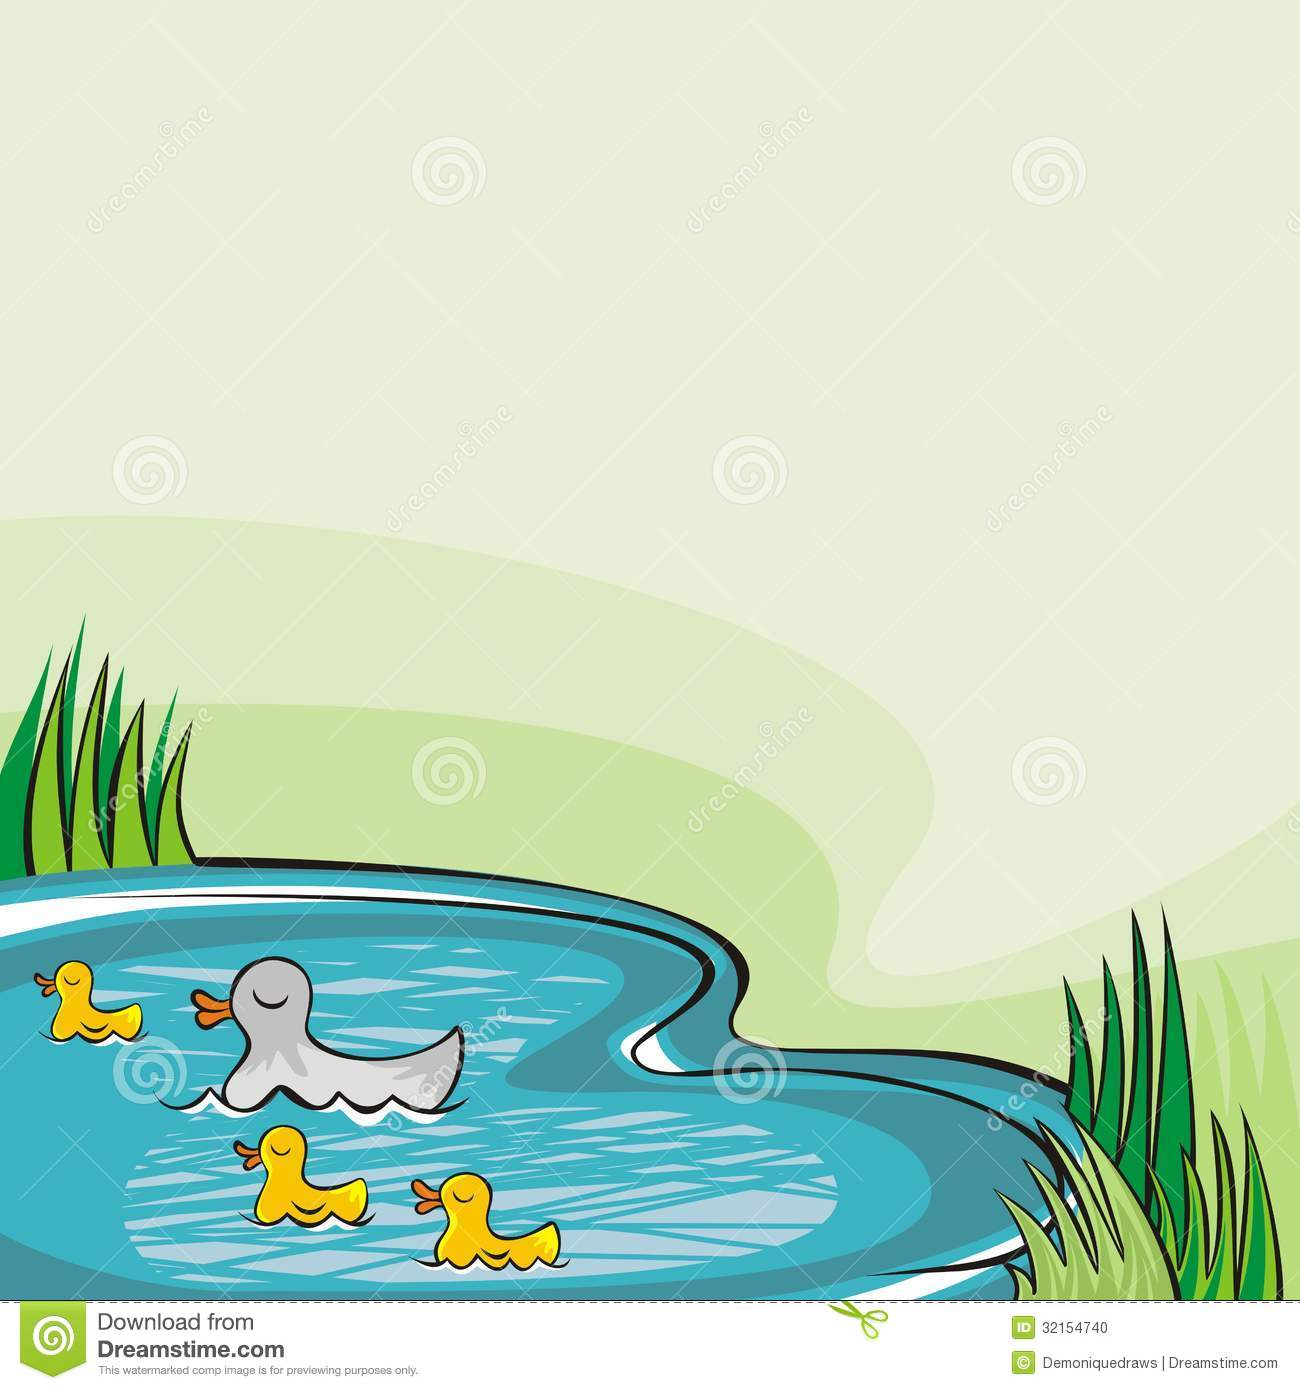 Green Ducks Clipart.